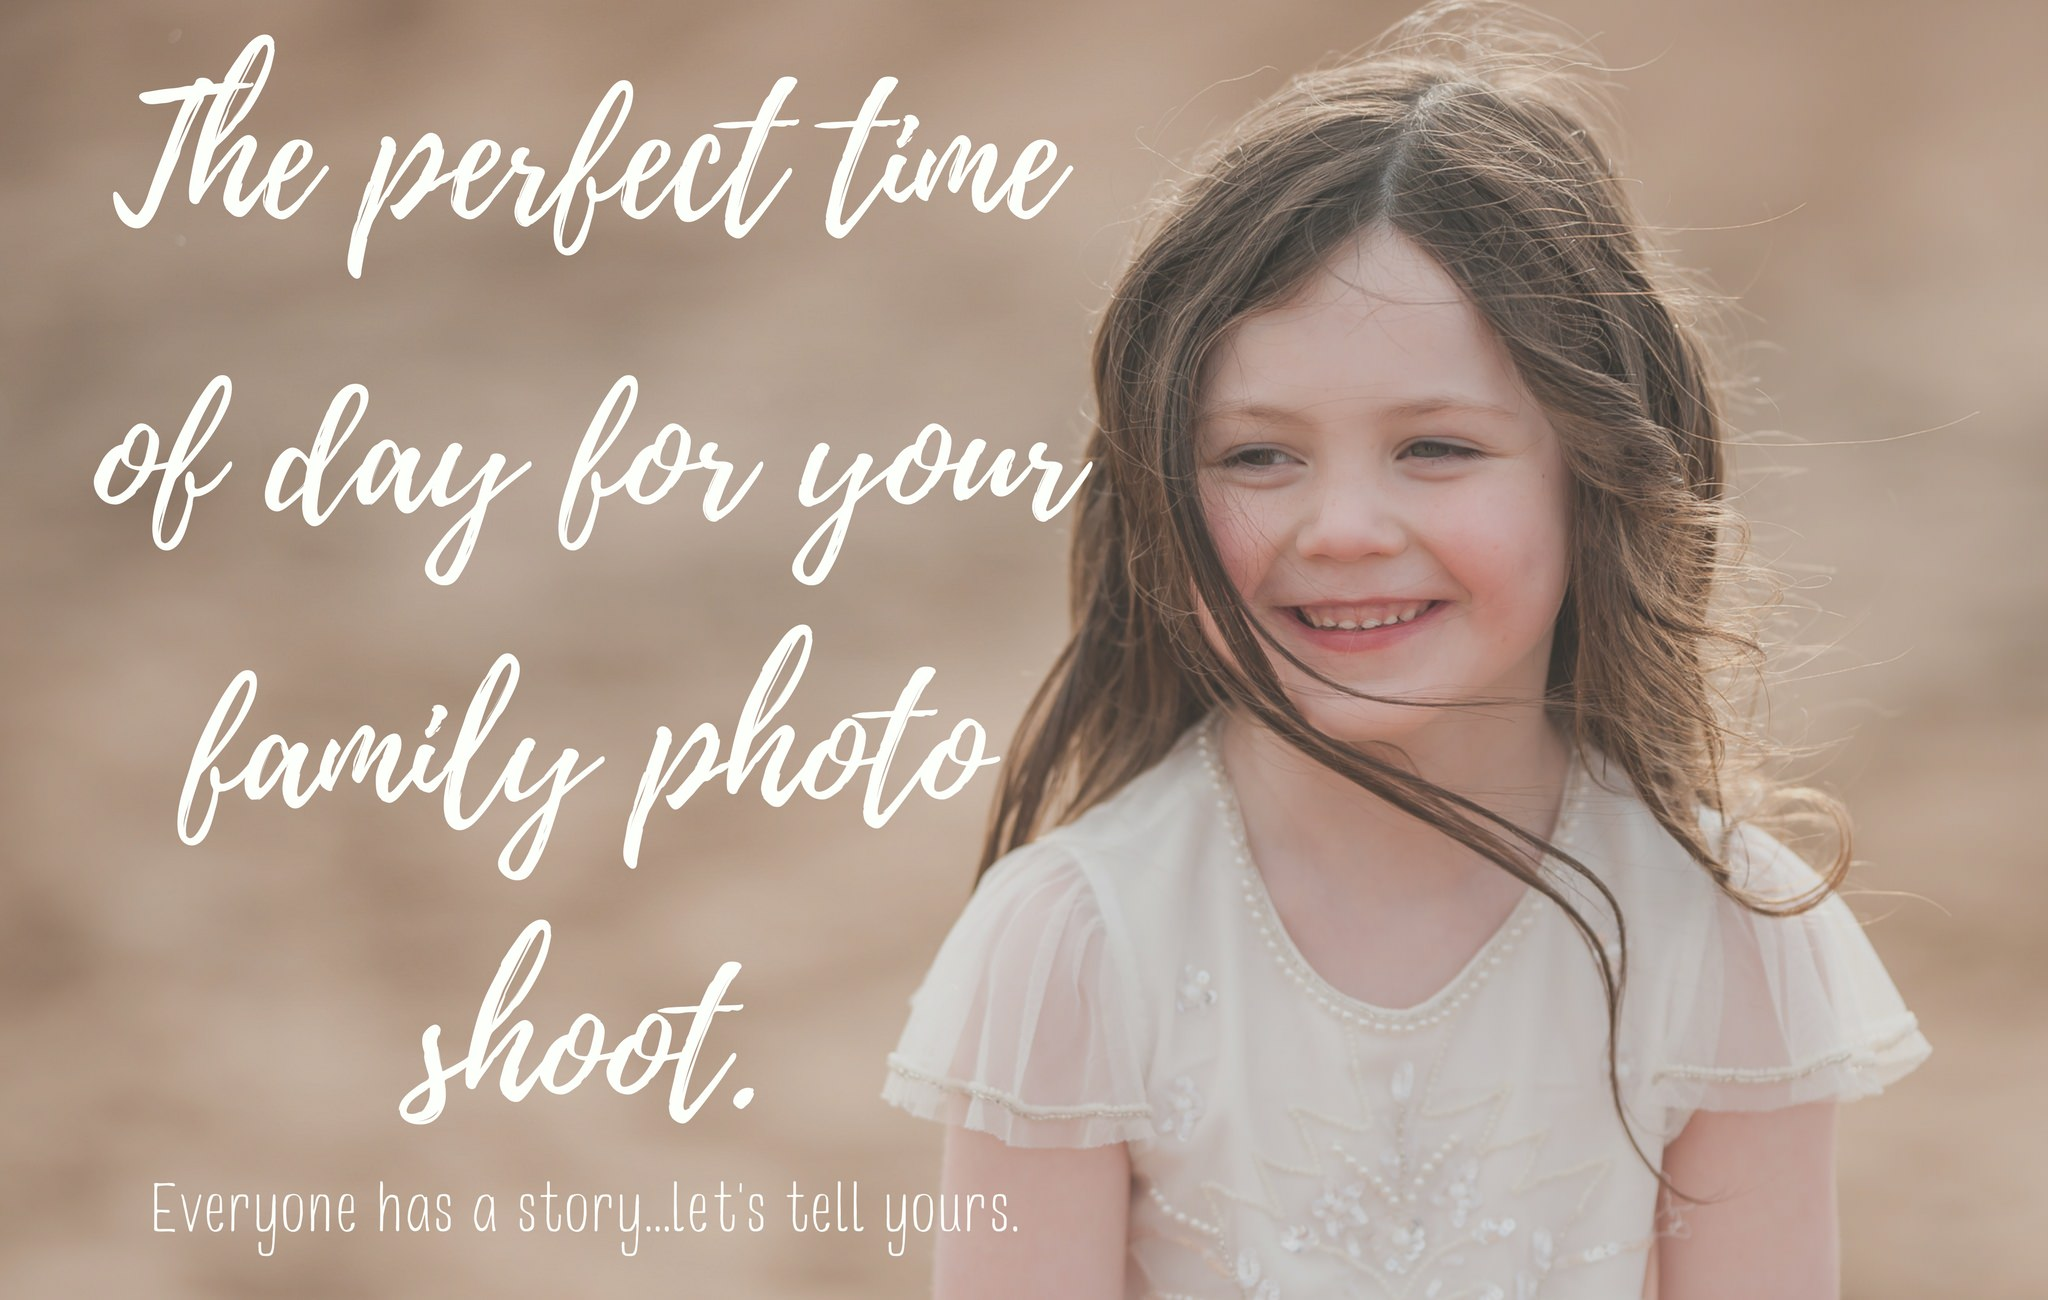 The perfect time of day for your photo shoot. .jpg